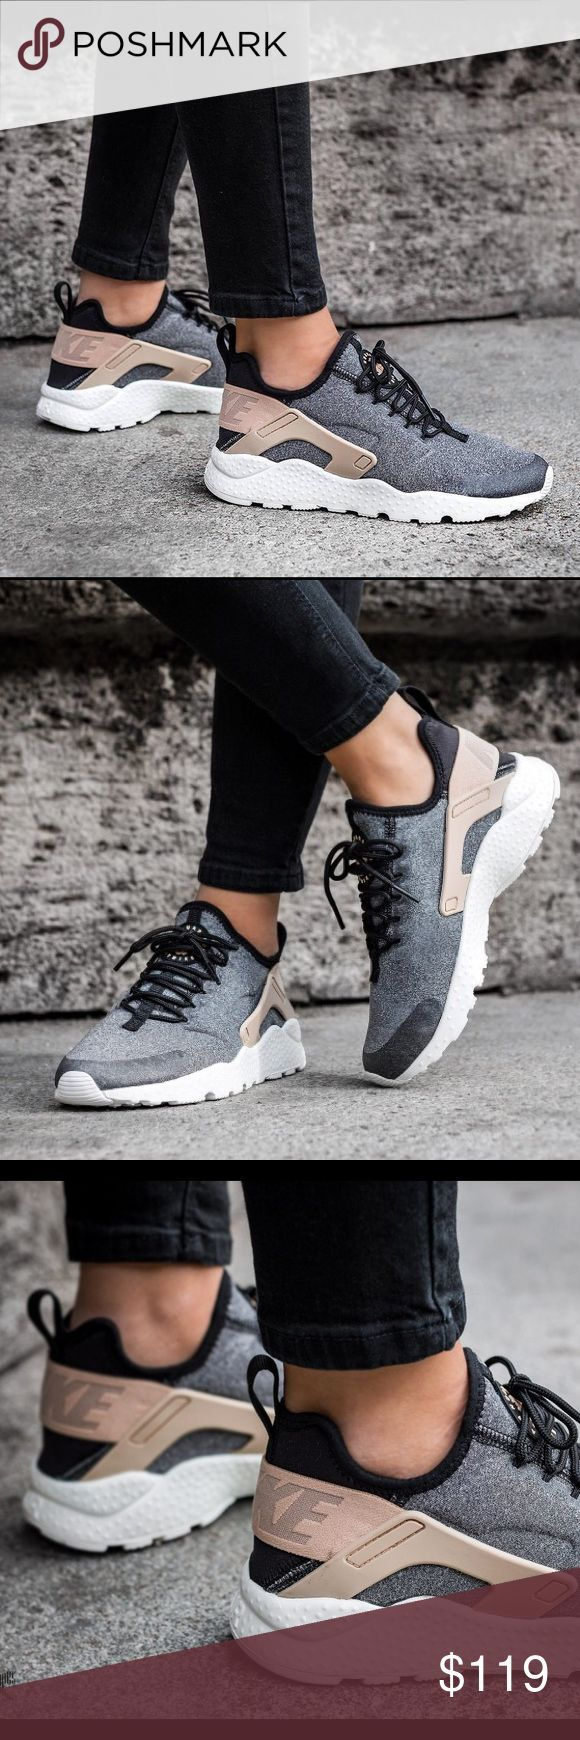 brand new 5bf67 36c4b Trendy Sneakers 2017/ 2018 : PM_EDITOR Pick{ Nike} Air Max Huaraches Ultra  SE Women's size 9. Blogg